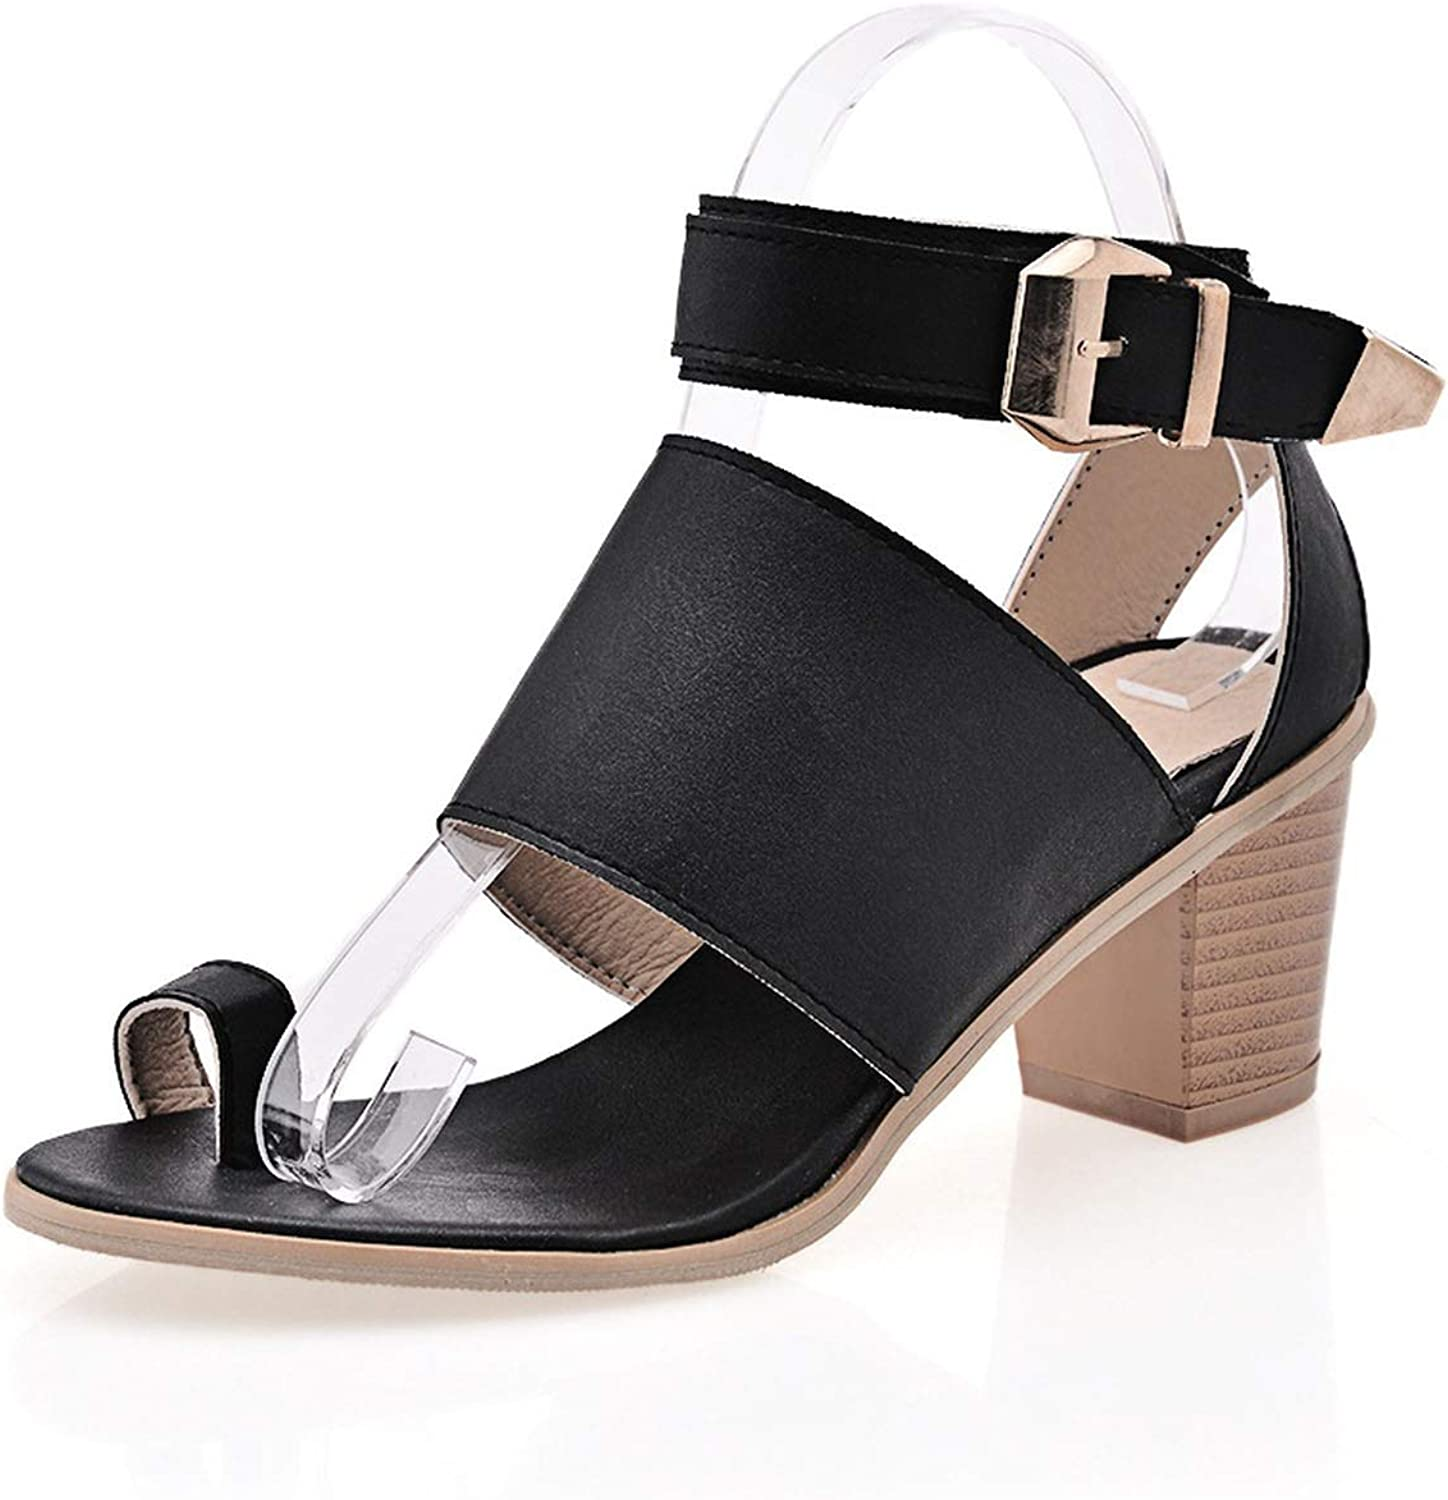 Summer Buckle Women Sandals Thick High Heels Leather Casual shoes